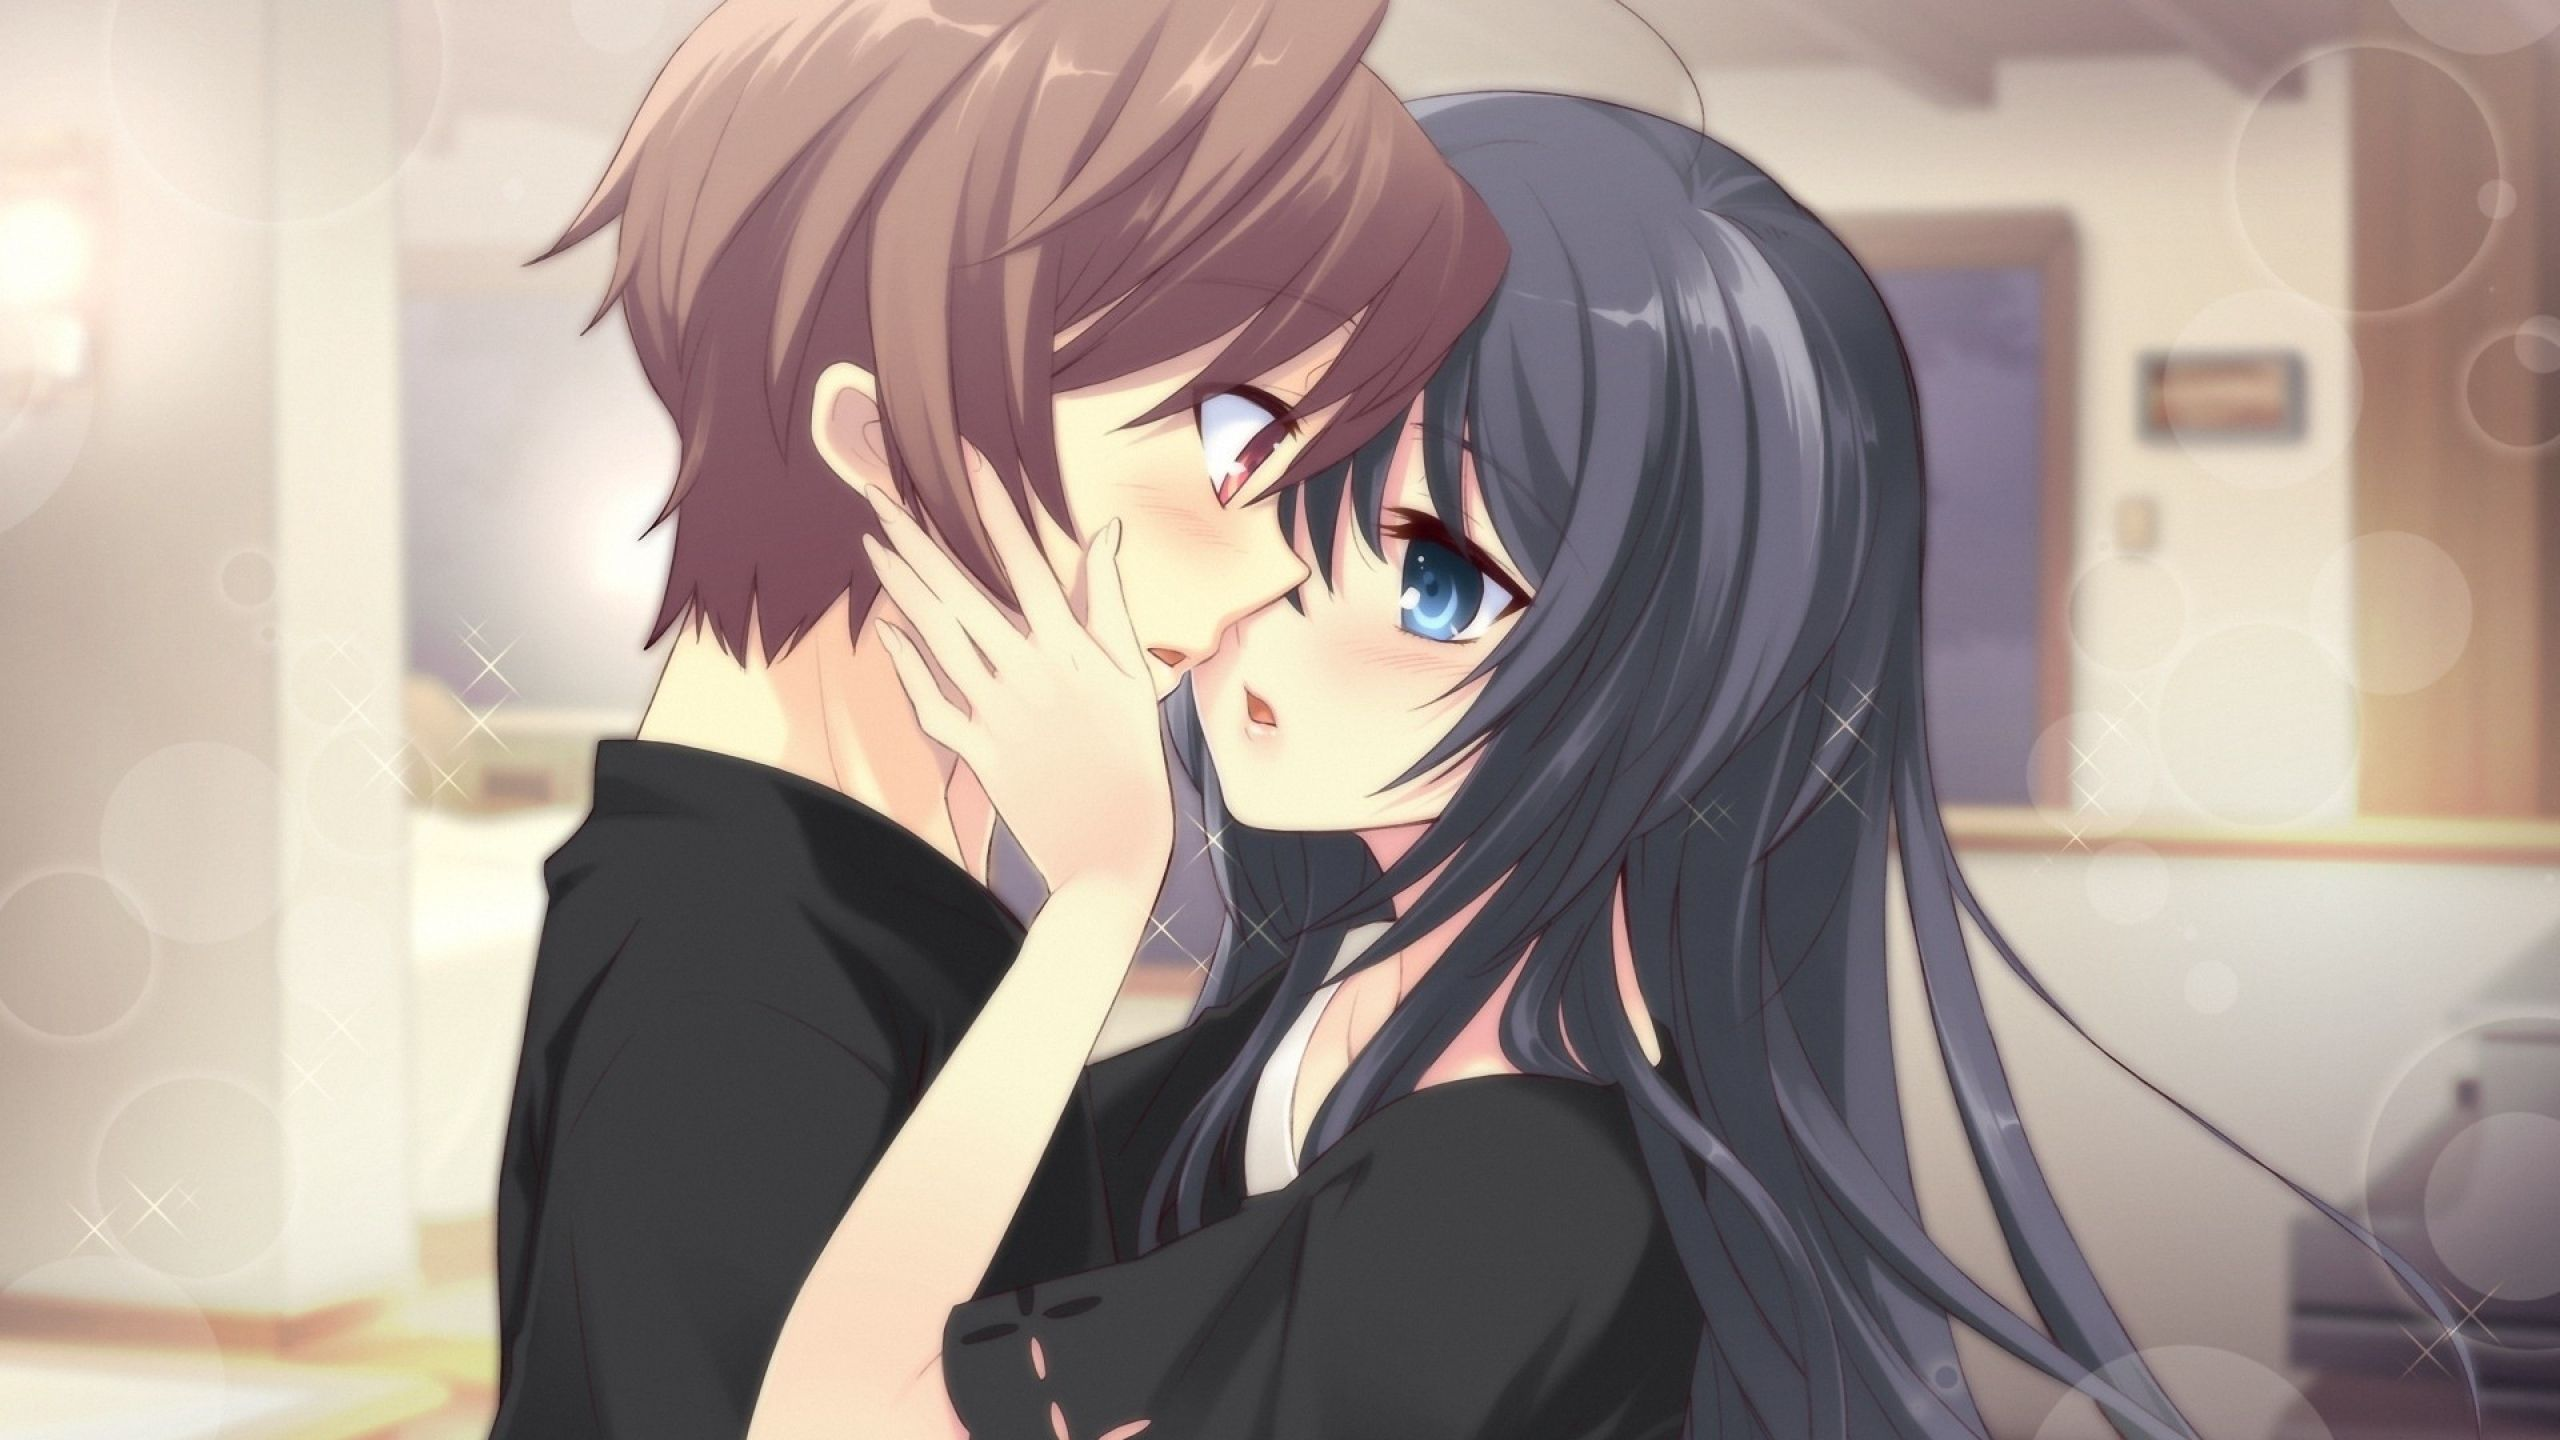 couple anime couples - photo #31